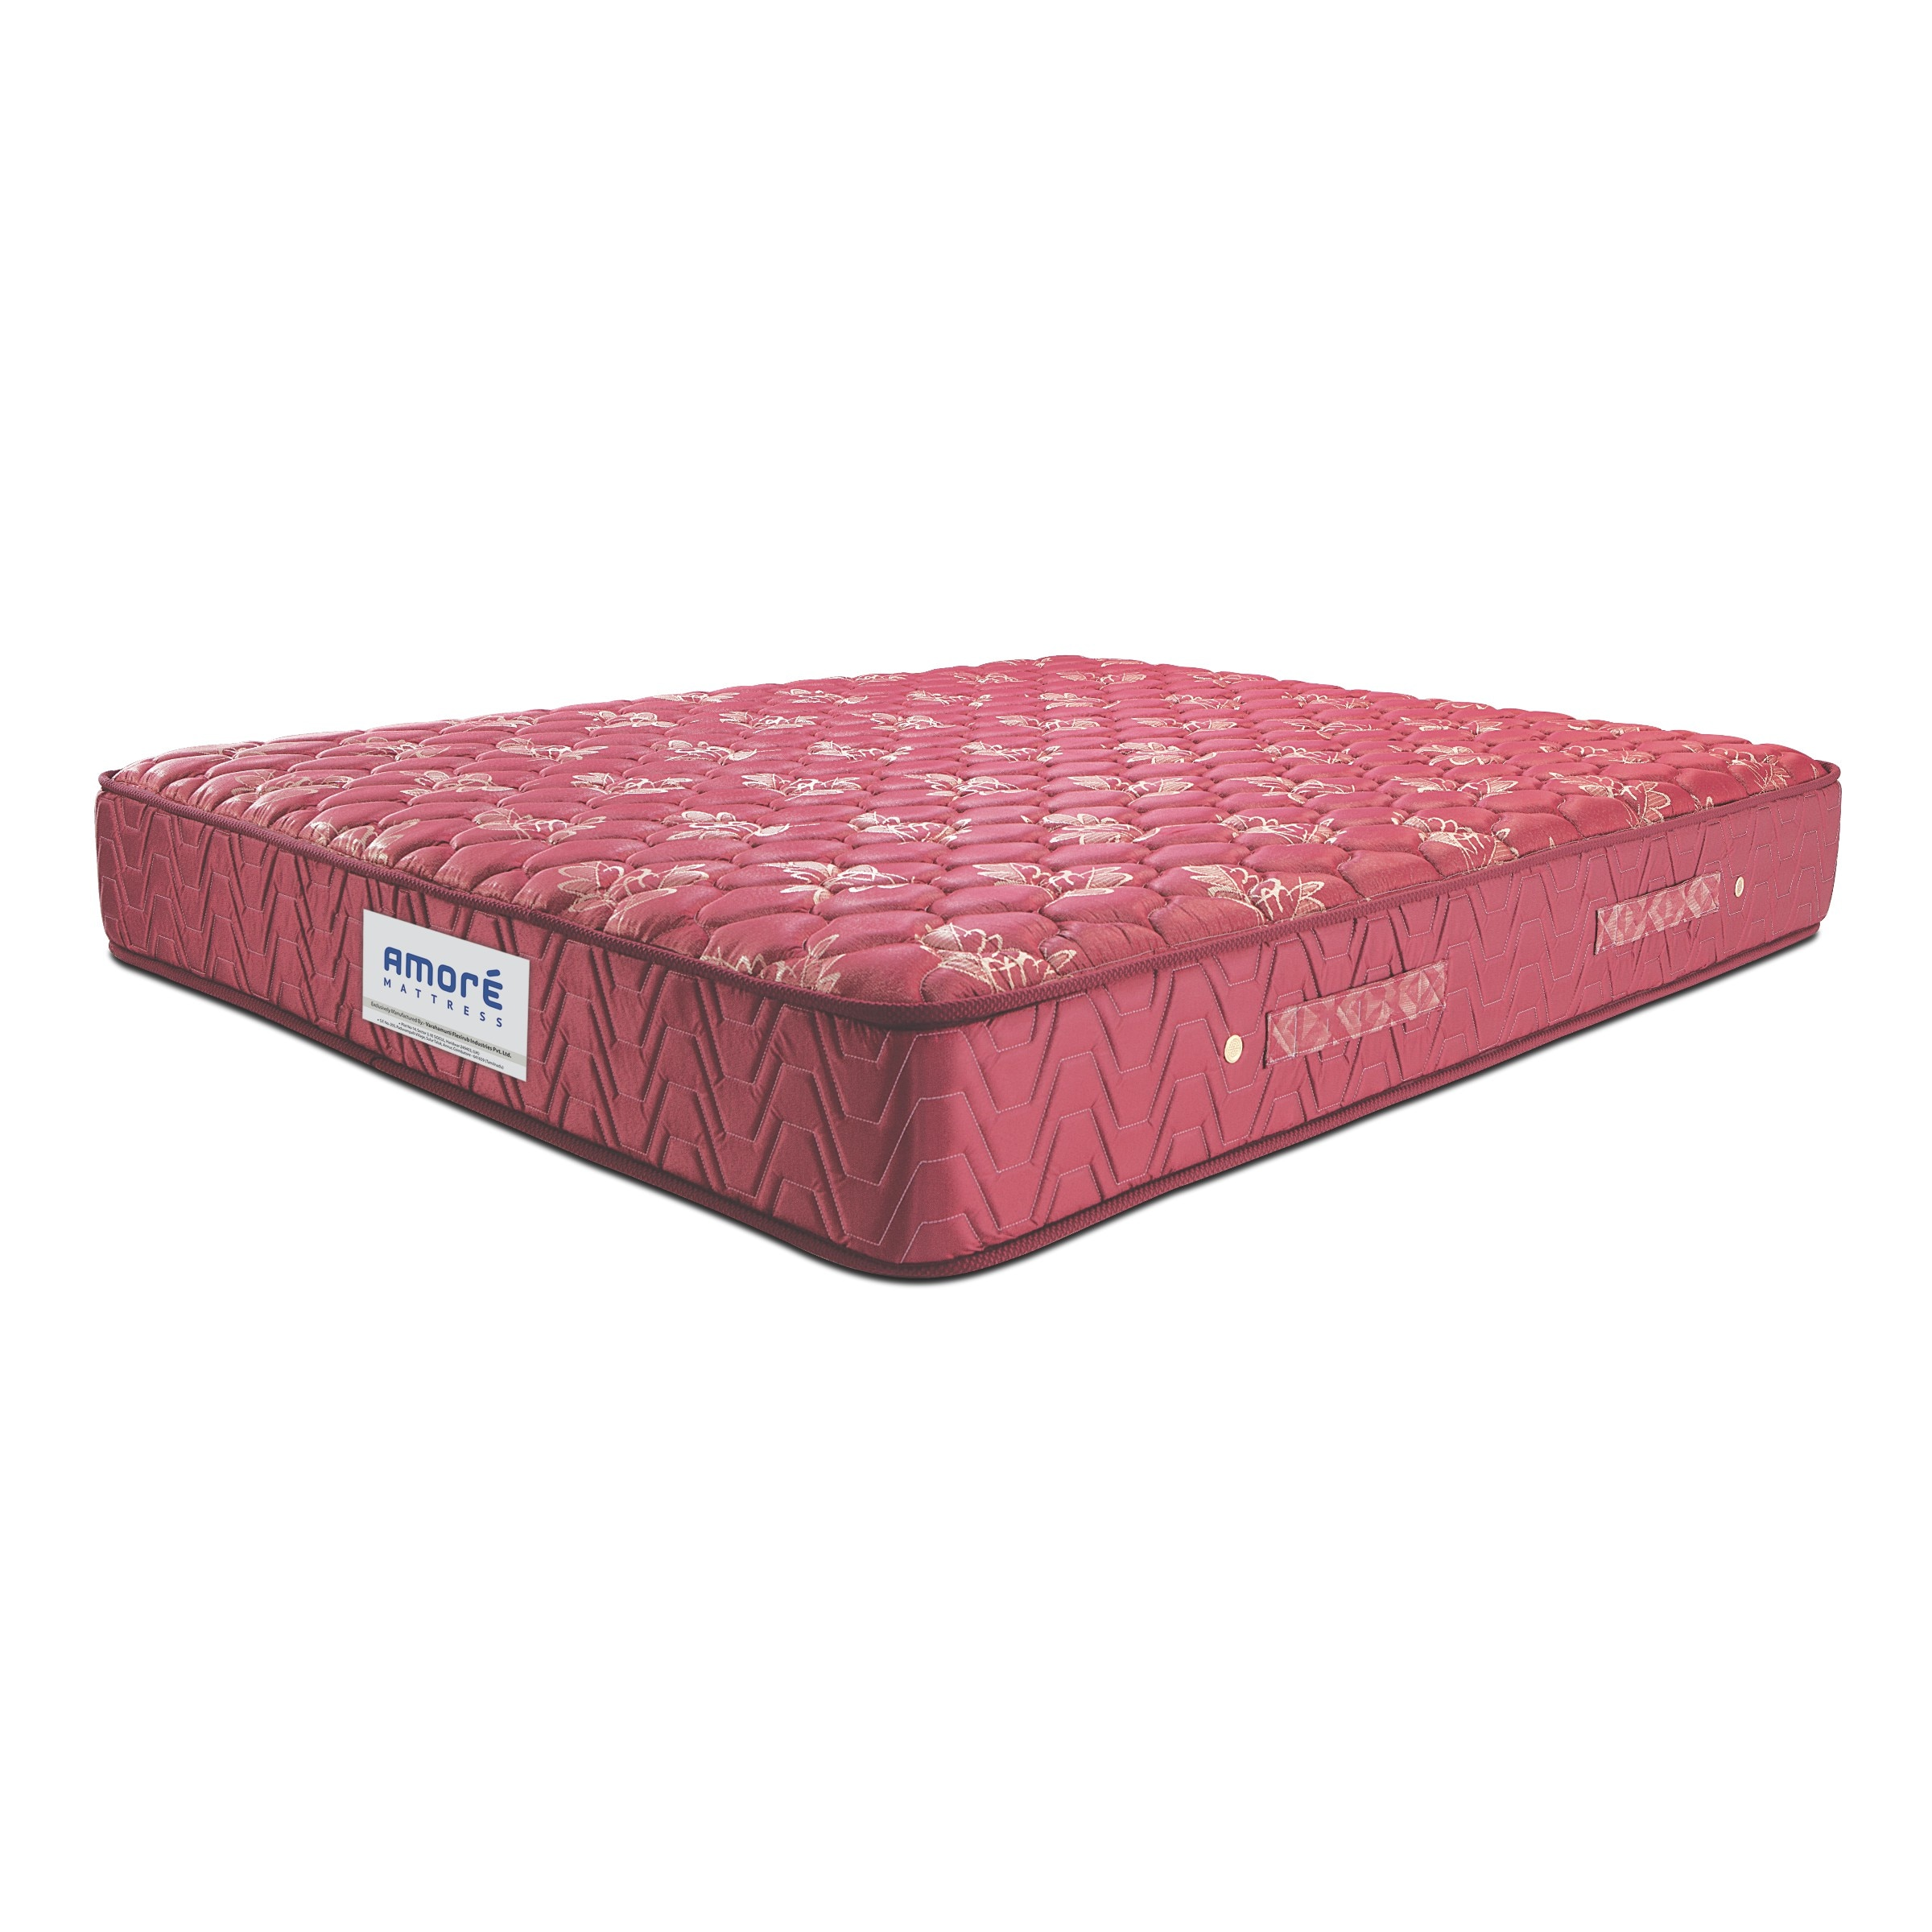 Amore International Bonnell 6 inch Single Bonnell Spring Mattress